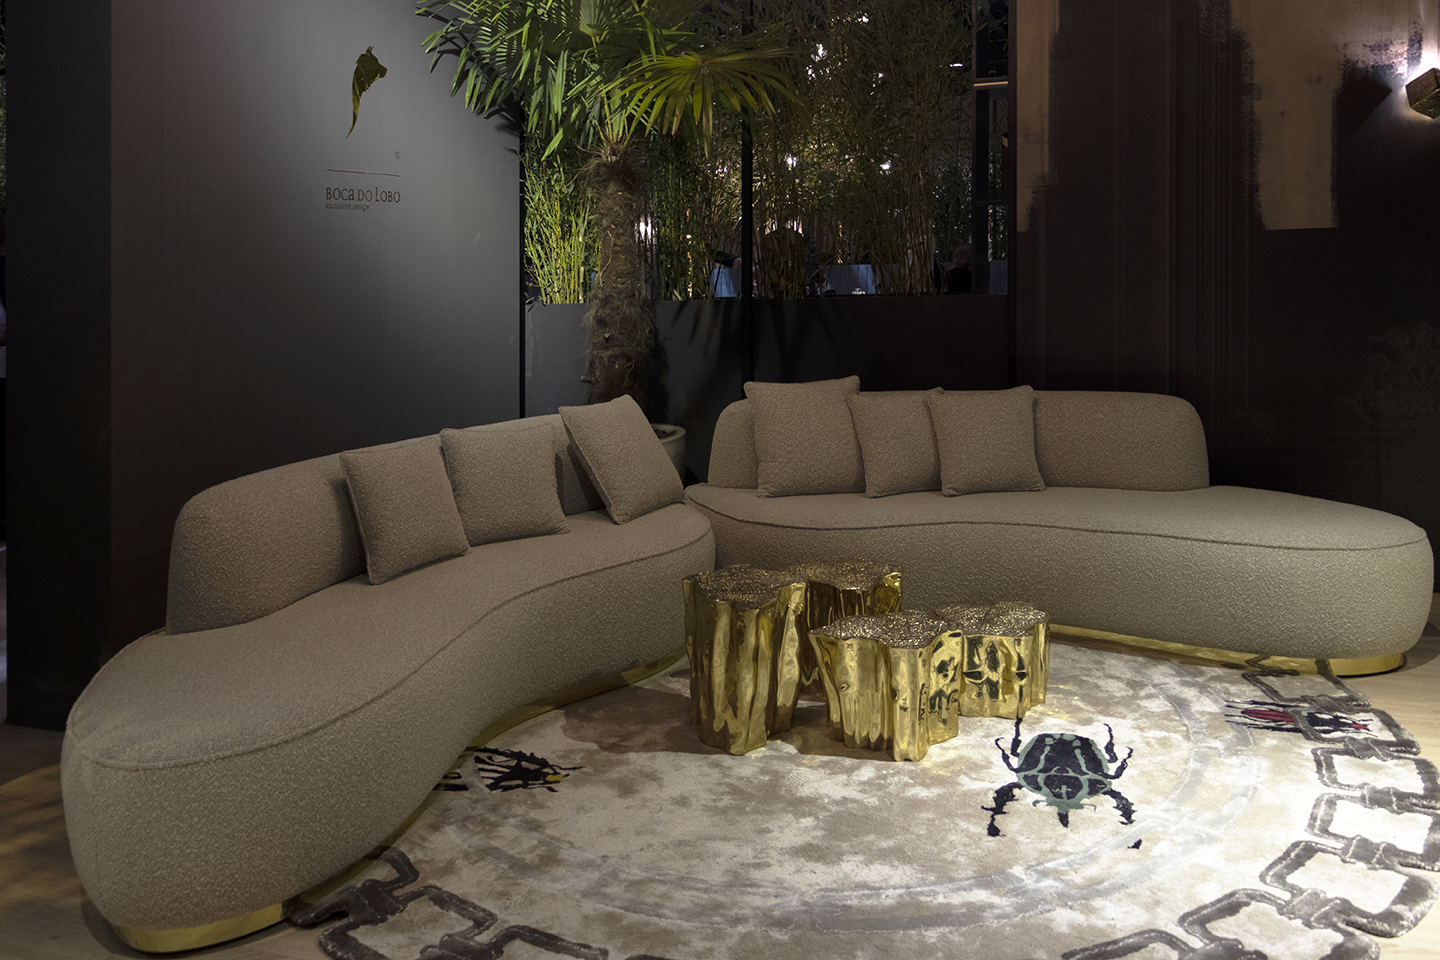 boca do lobo at Salone del Mobile 2019 salone del mobile 2019 SALONE DEL MOBILE 2019: EVERYTHING THAT YOU ARE MISSING IMG 0423 1